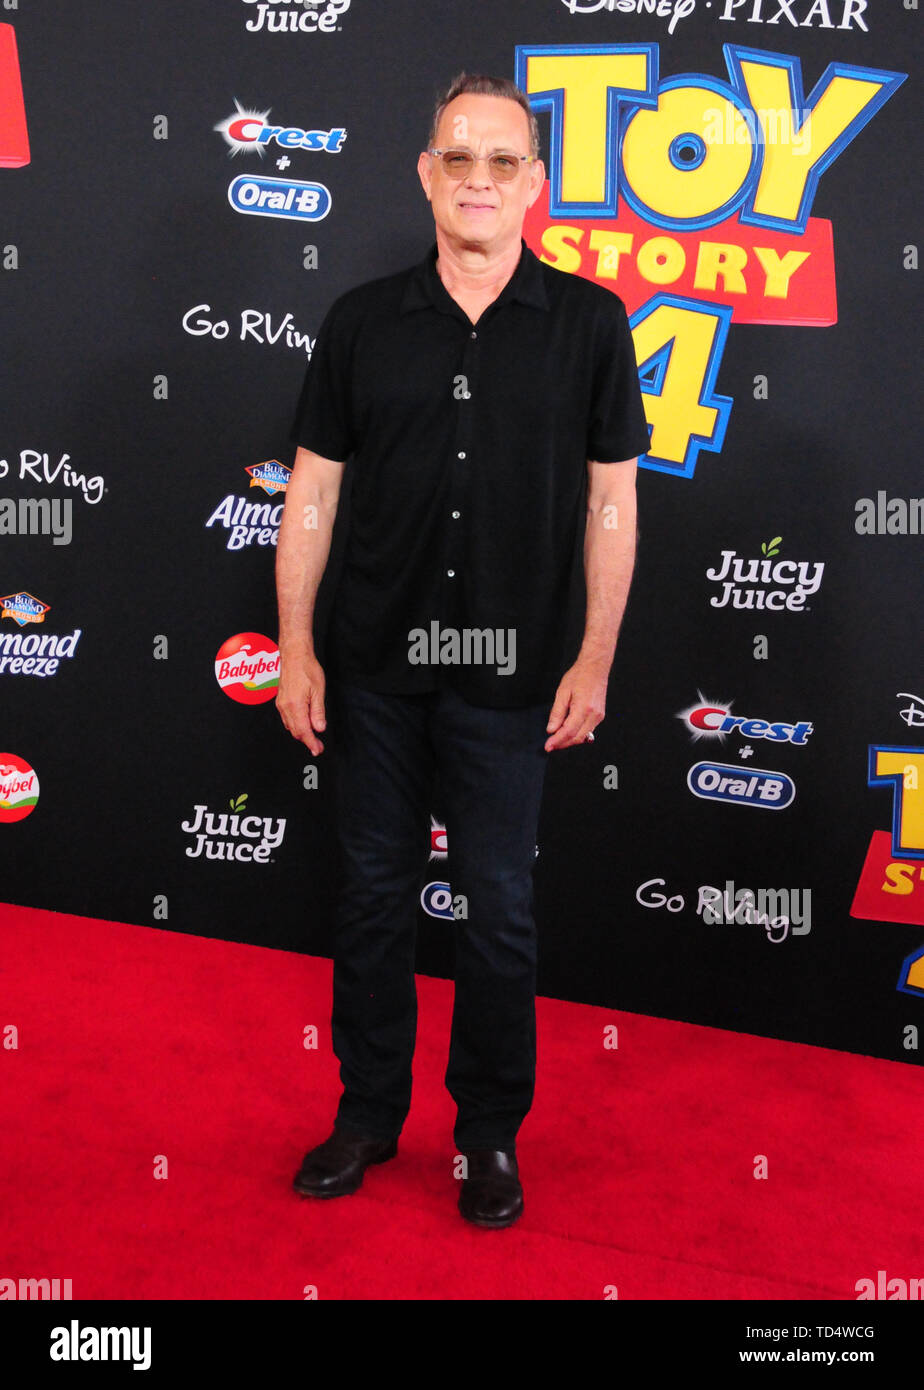 Hollywood, California, Estados Unidos, 11 de junio de 2019 el actor Tom Hanks asiste al estreno mundial de la película de Disney y Pixar 'Toy Story 4' el 11 de junio de 2019 en el Capitan Theatre de Hollywood, California, USA. Foto por Barry King/Alamy Live News Imagen De Stock